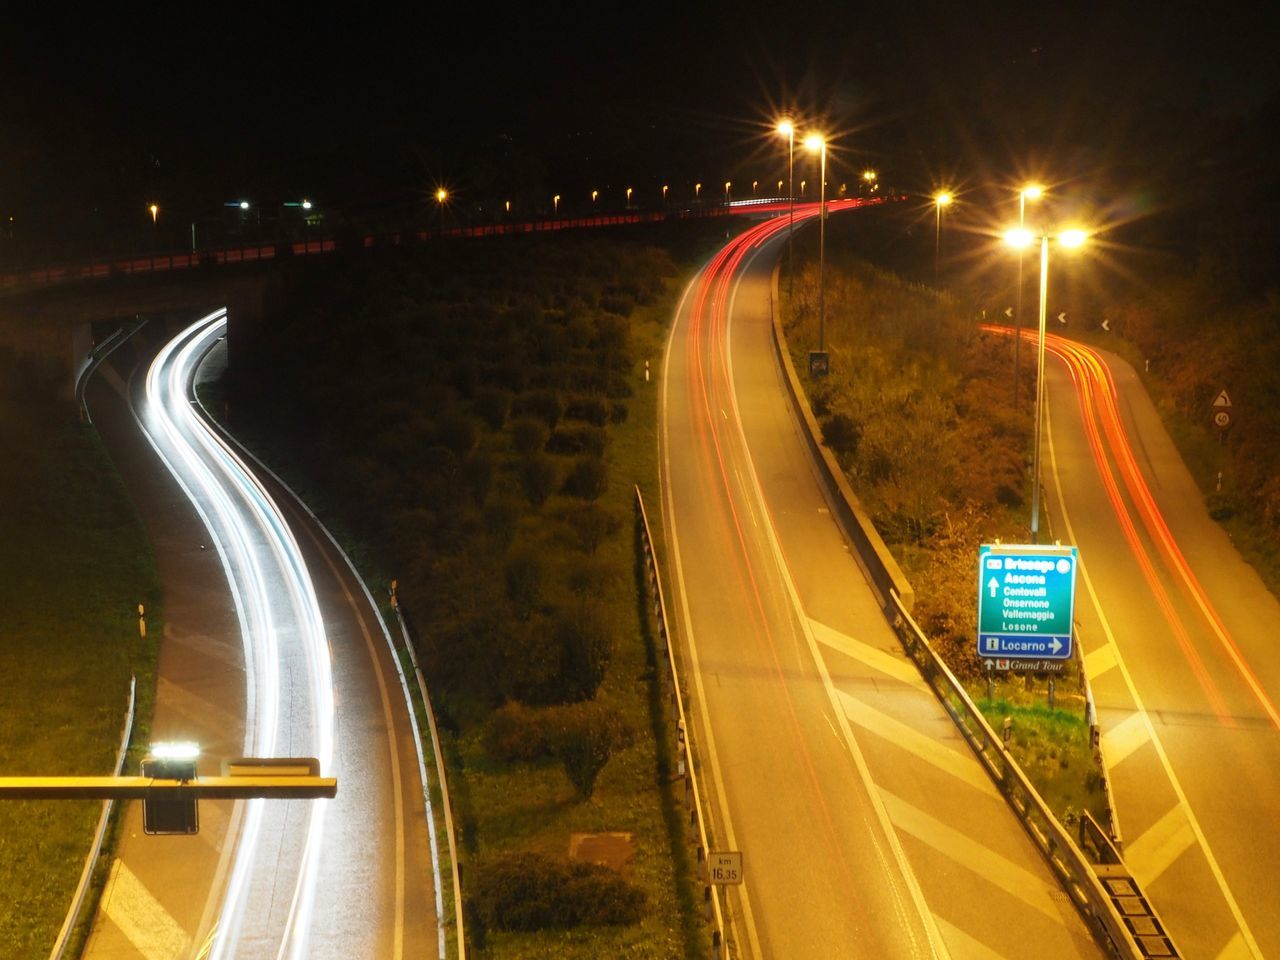 illuminated, night, light trail, speed, motion, long exposure, road, street light, transportation, traffic, street, blurred motion, high angle view, no people, car, outdoors, land vehicle, high street, city